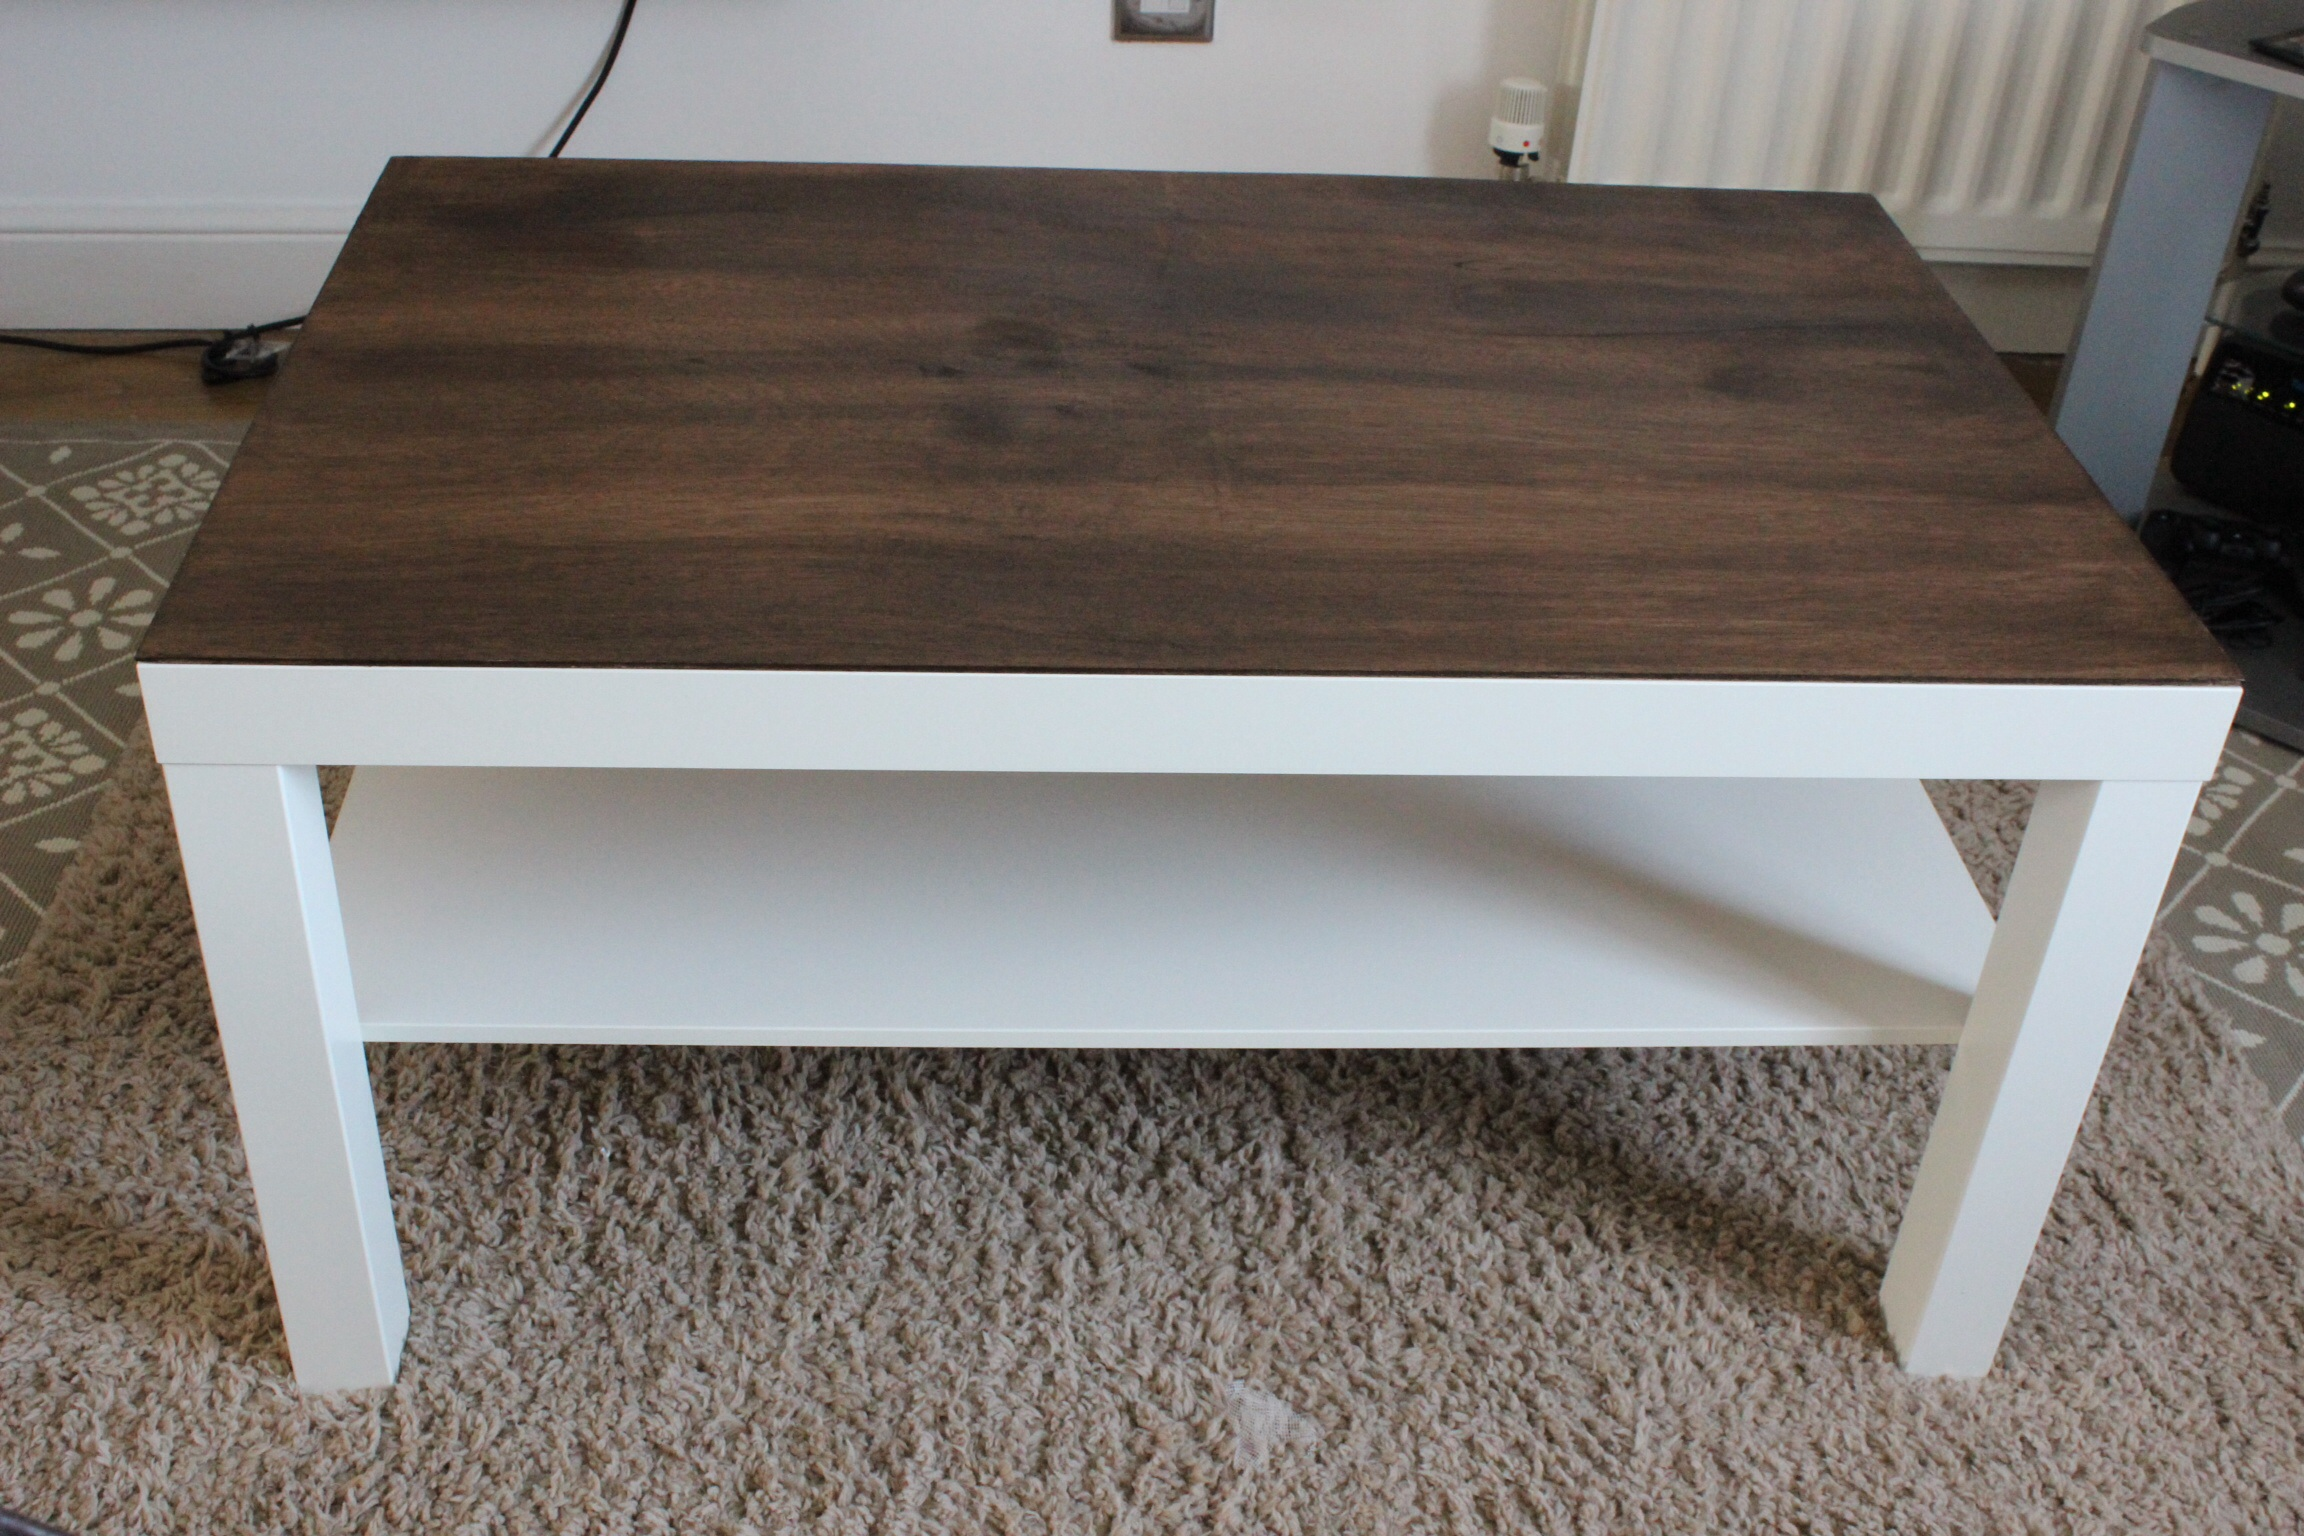 Ikea Coffee Table Lack Use The Largest As A Coffee Table Or Group Them For A Graphic Display (View 8 of 9)